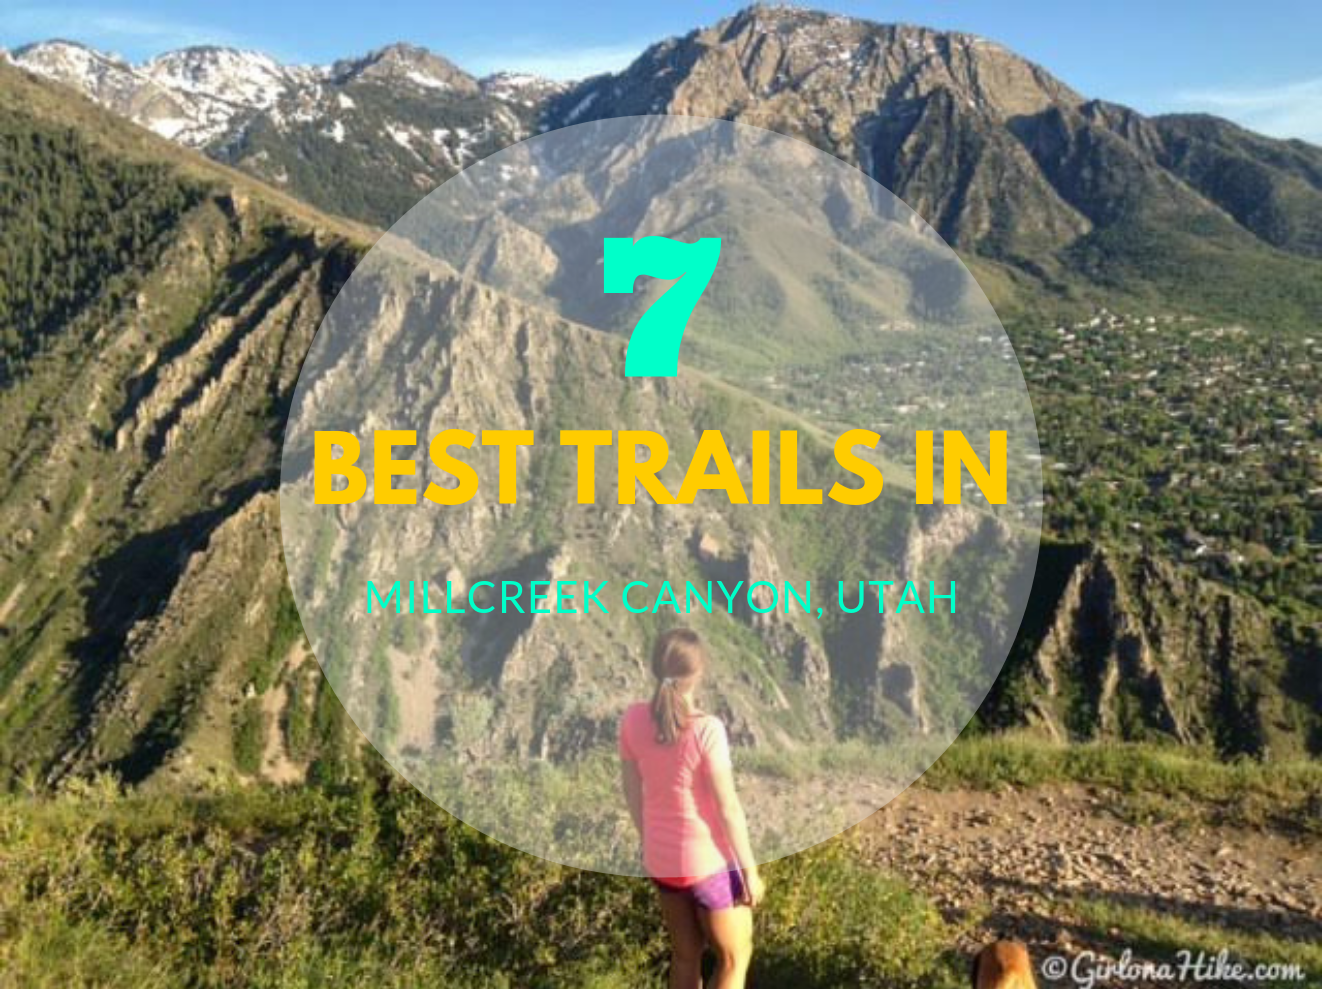 The 7 Best Trail in Millcreek Canyon